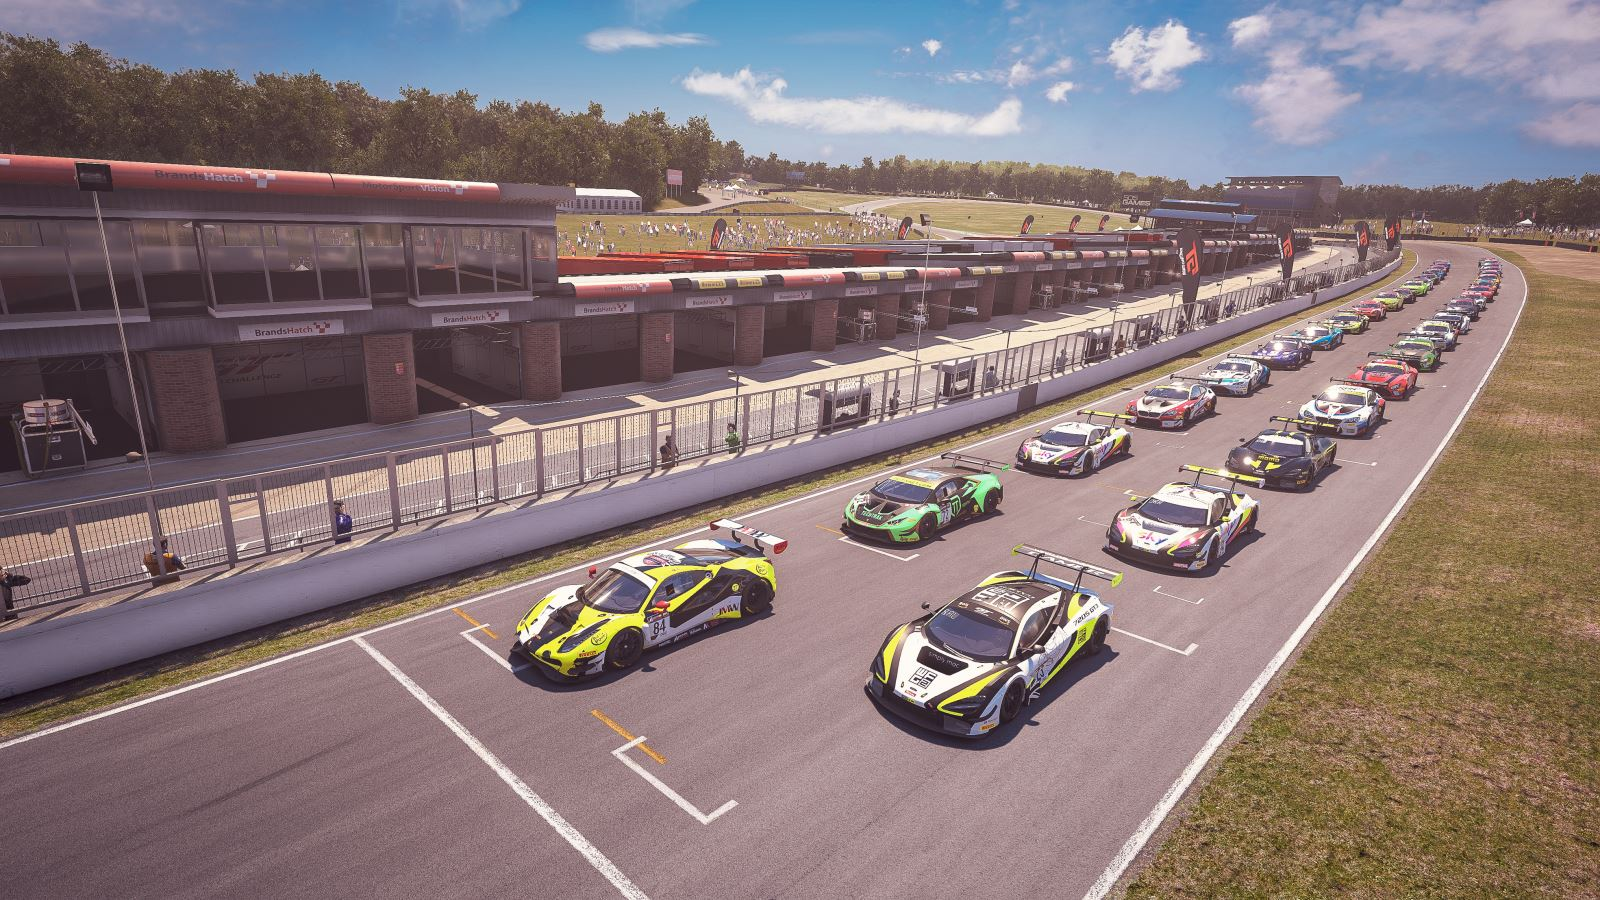 Esports Preview: Titles on the line at Silverstone's penultimate round